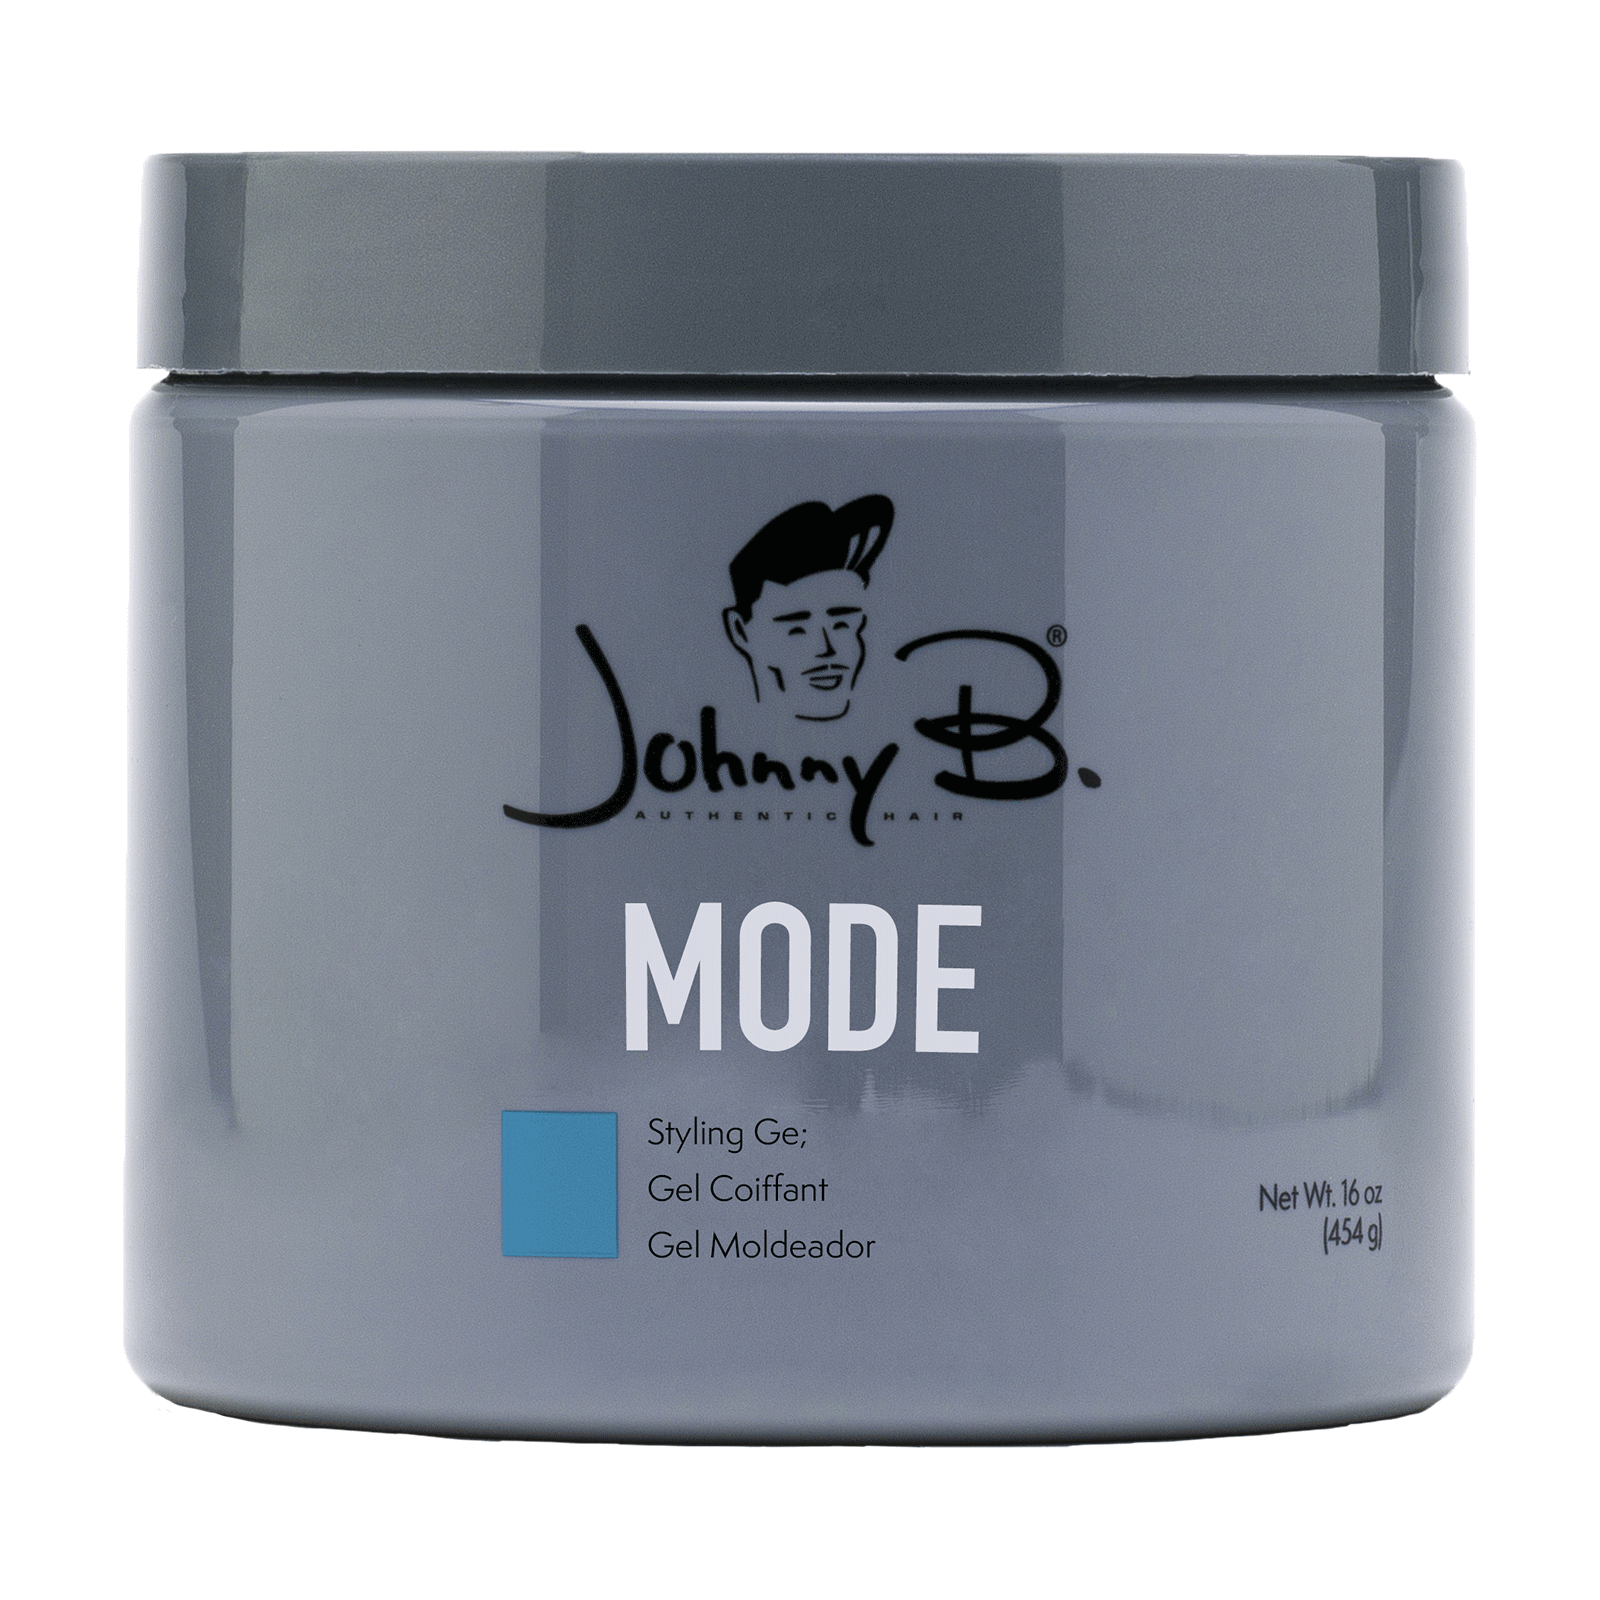 Mode Styling Gel with Pump